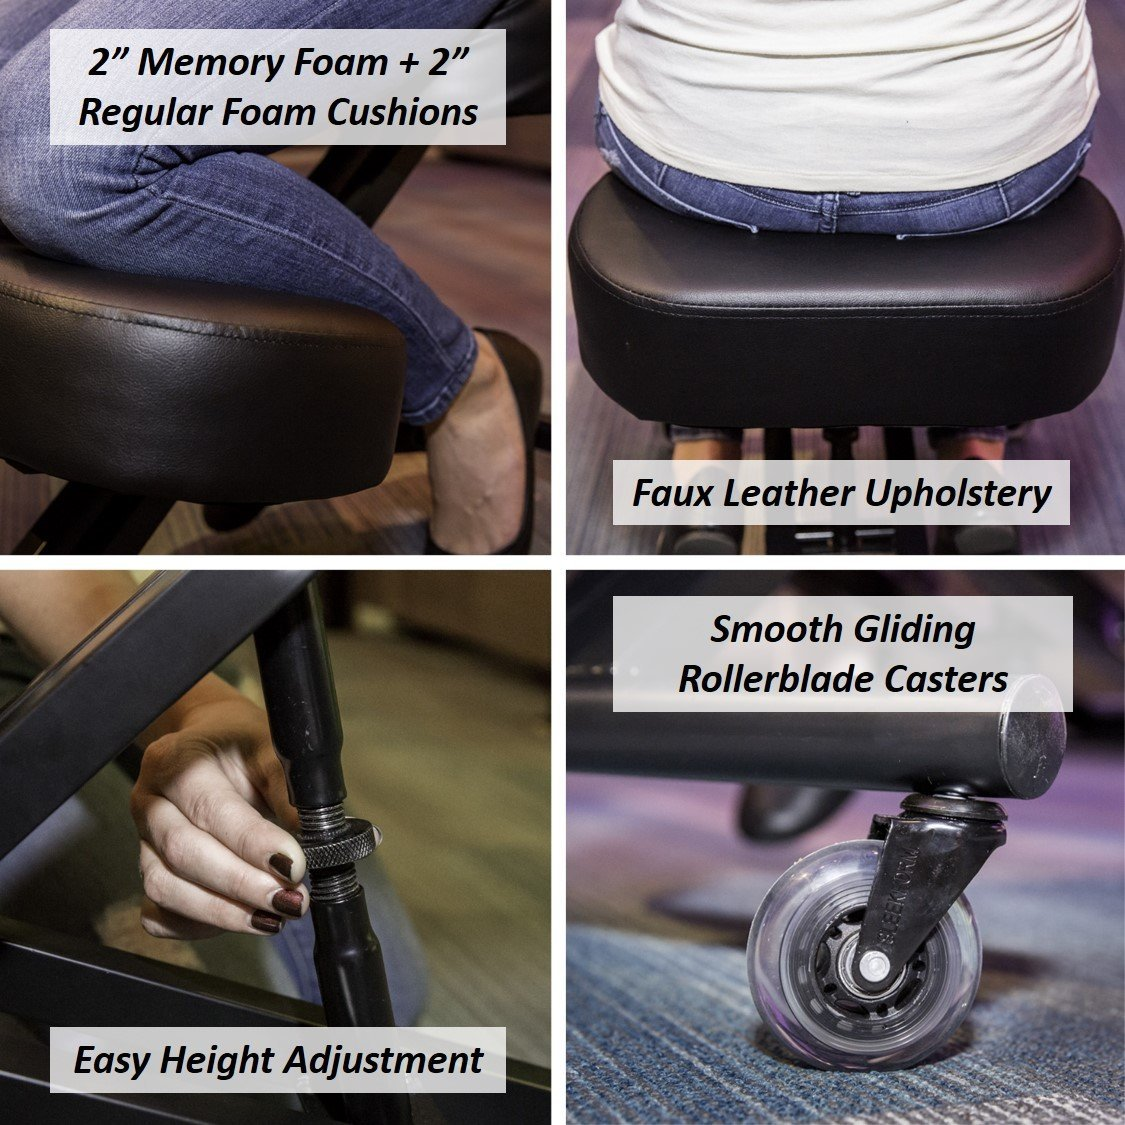 Sleekform Ergonomic Kneeling Chair M2 (Memory/Regular Foam), Adjustable Stool for Home, Office, and Meditation - Rollerblade Casters by Sleekform (Image #7)